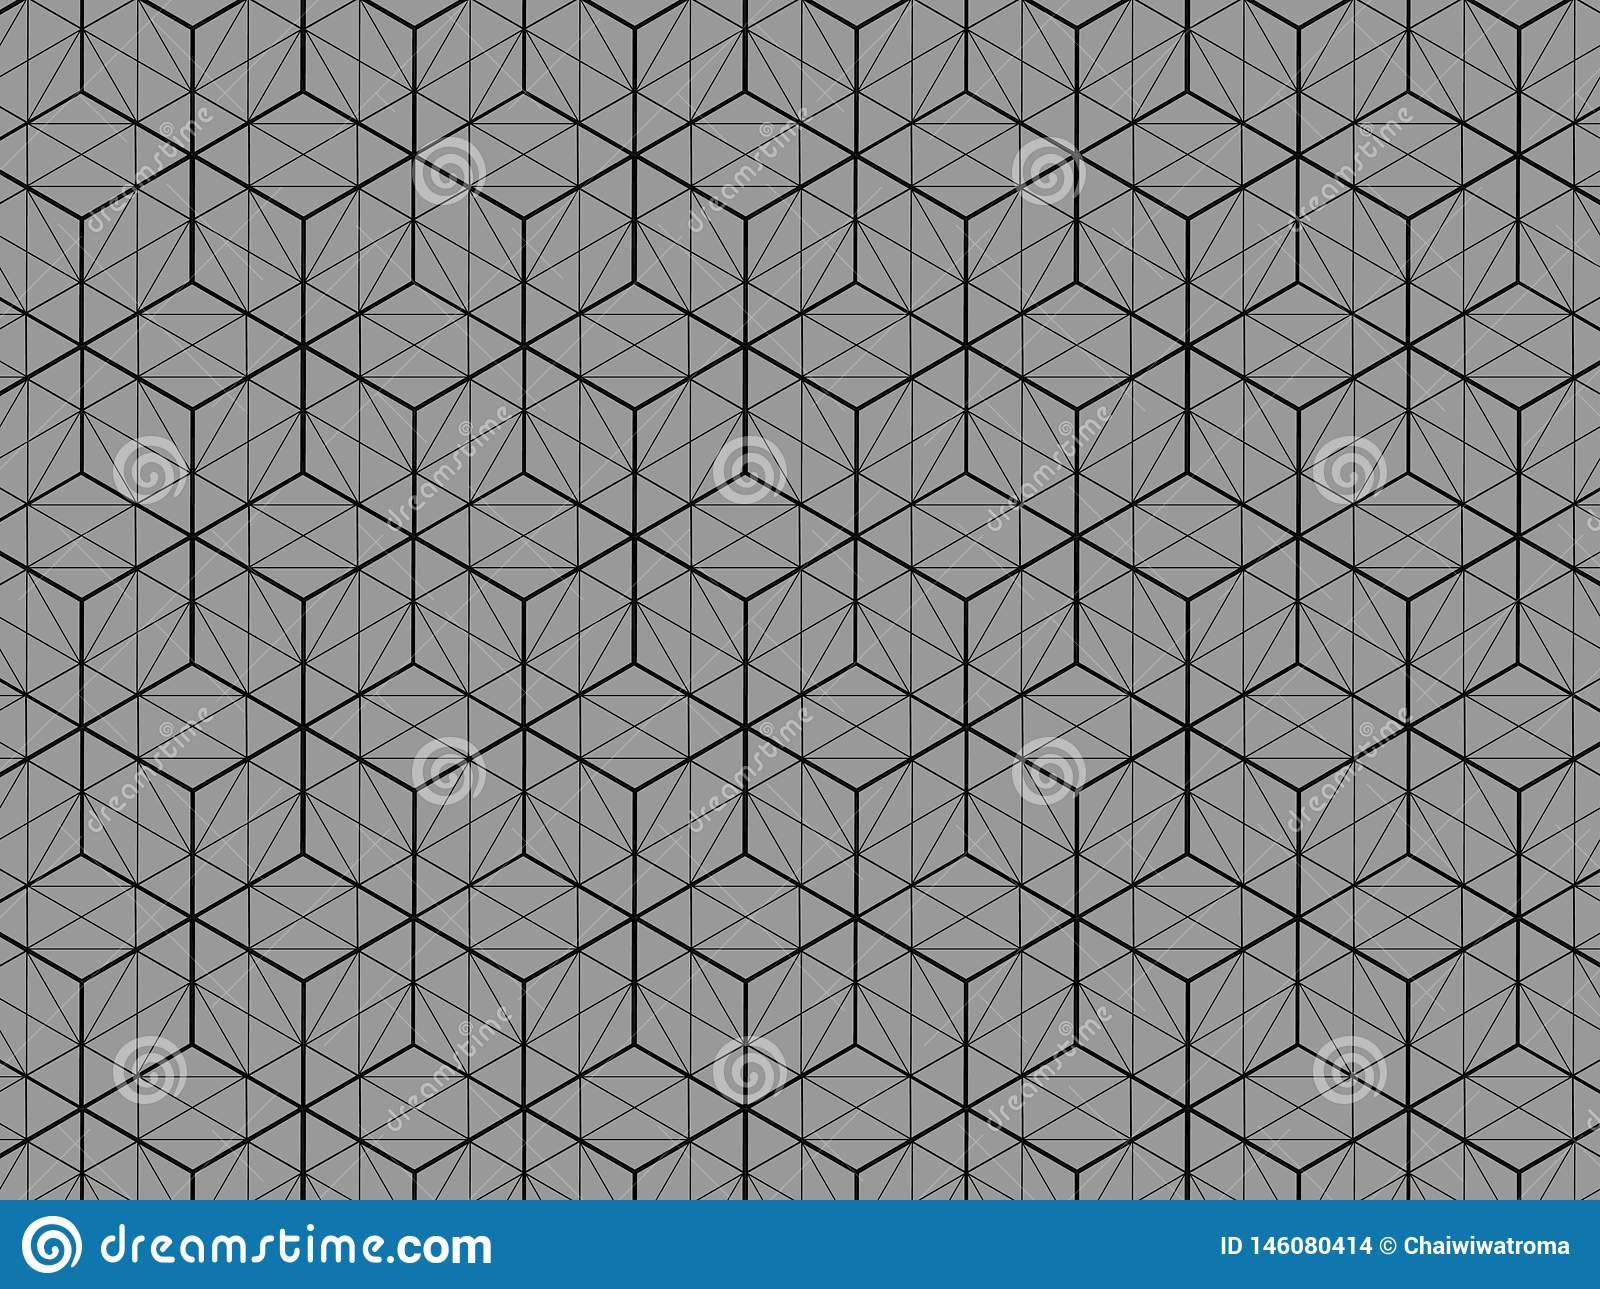 Square box pattern 3D view Is a gray background